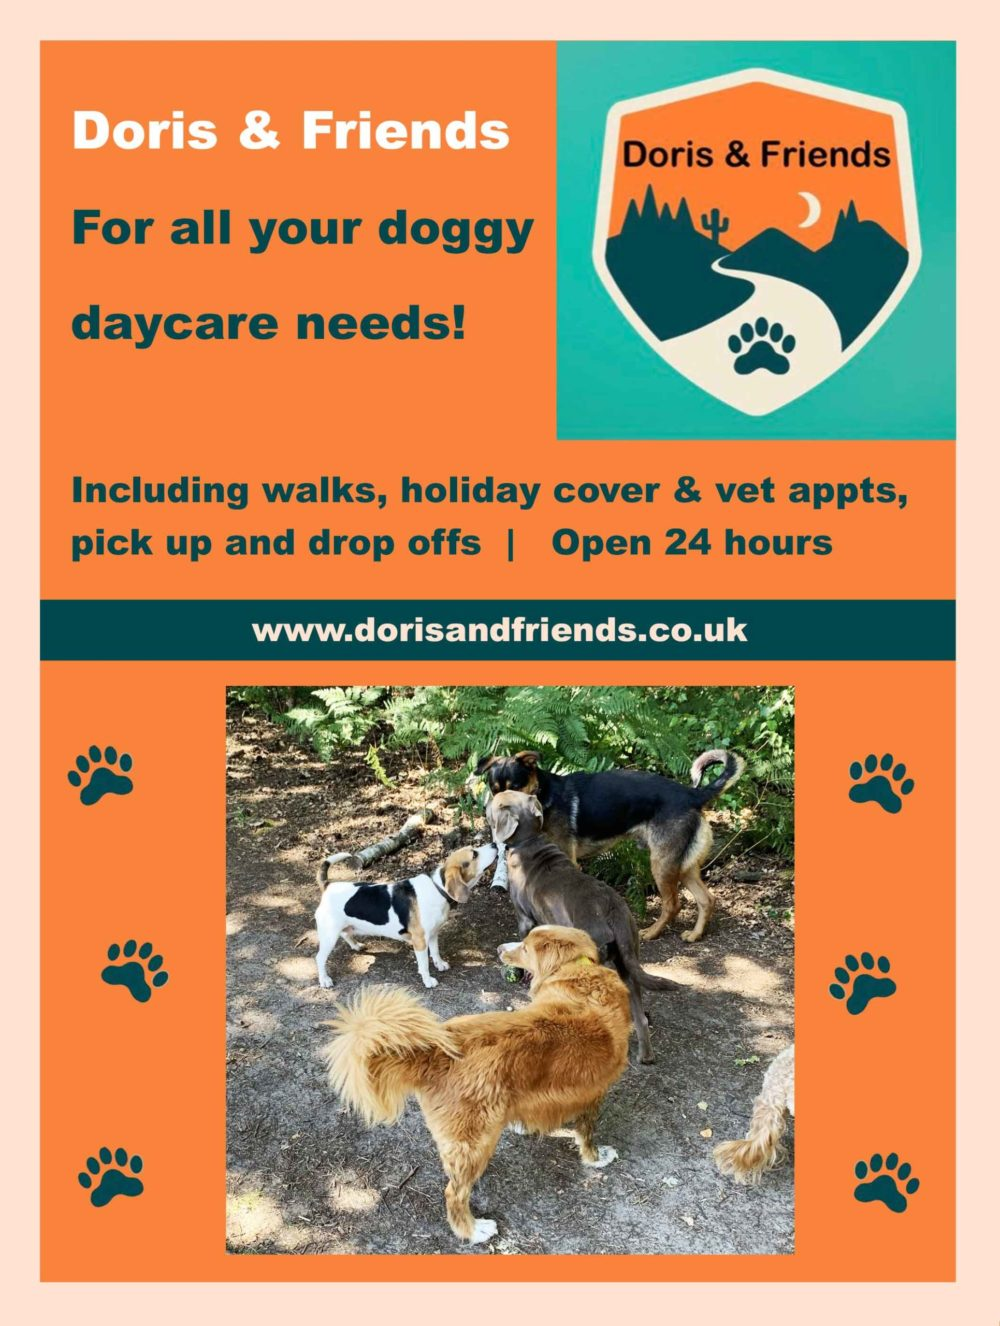 doris-and-friends daycare for dog-